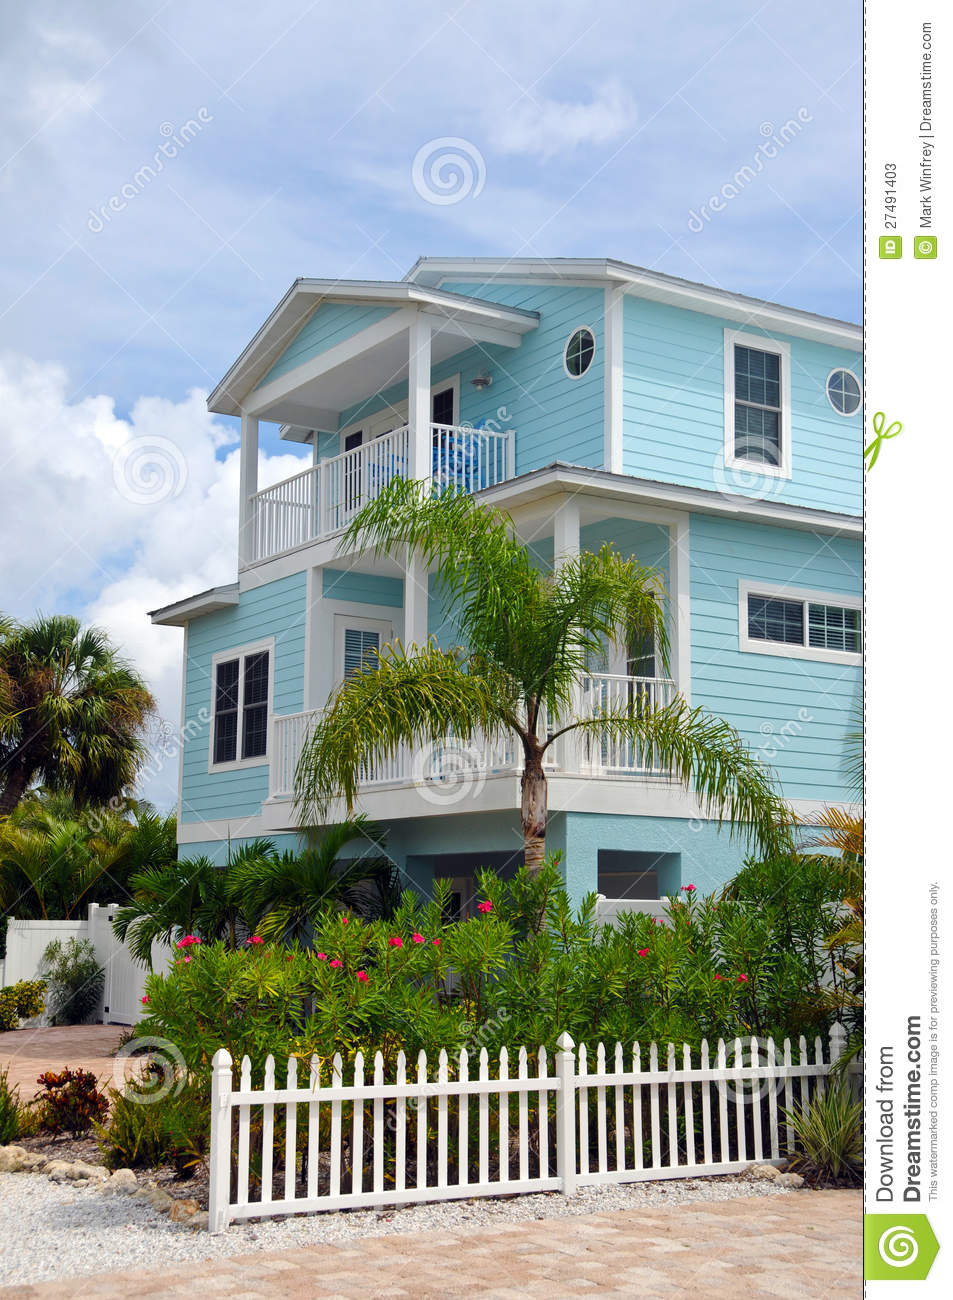 Two story beach house stock image image of shore for Beach house description